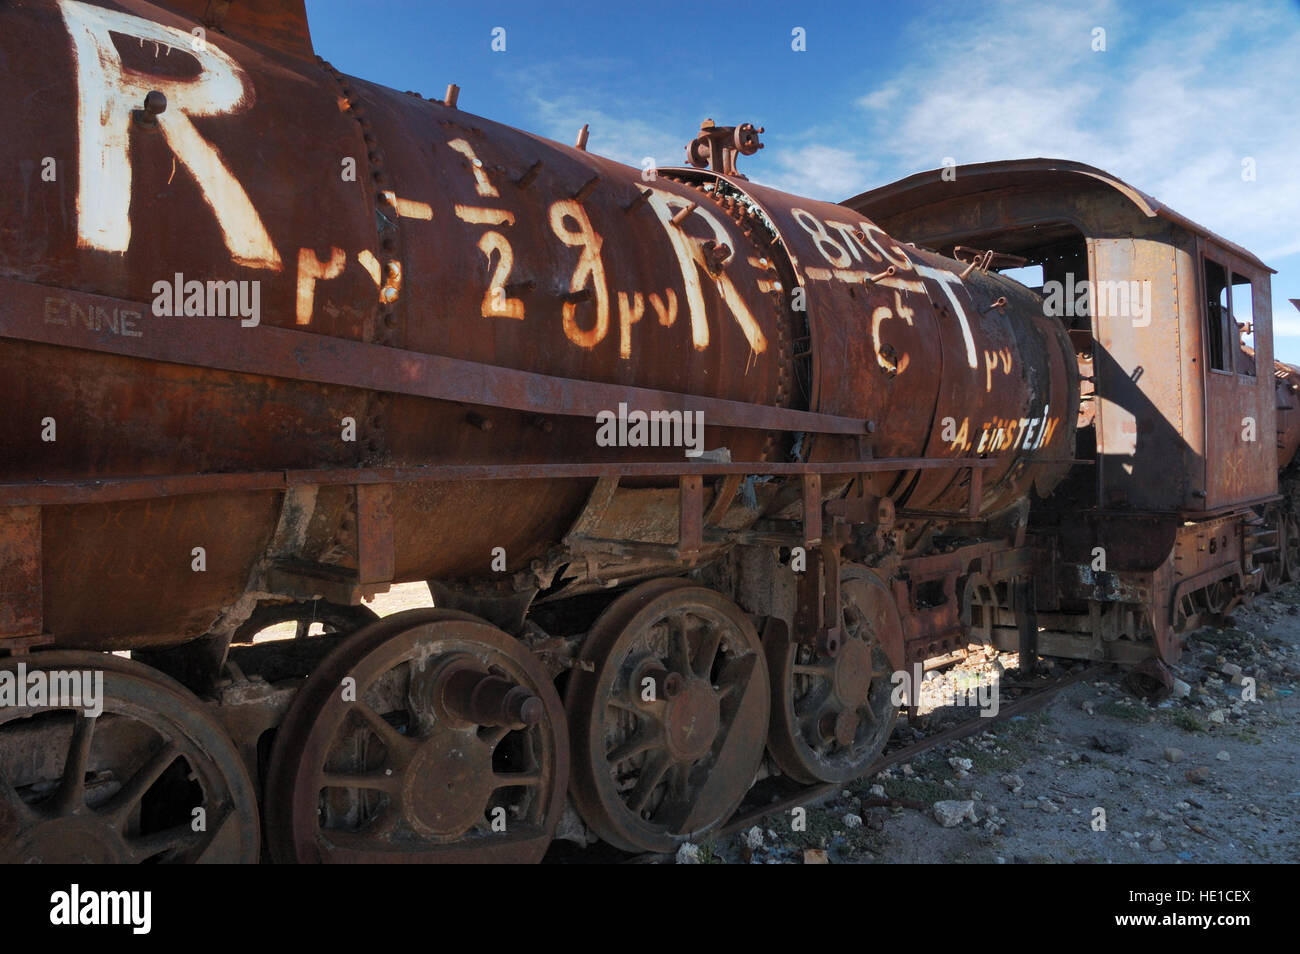 Theory of relativity on a rusty locomotive, train cemetery, Salar de Uyuni or Salar de Tunupa, Altiplano, Bolivia, - Stock Image